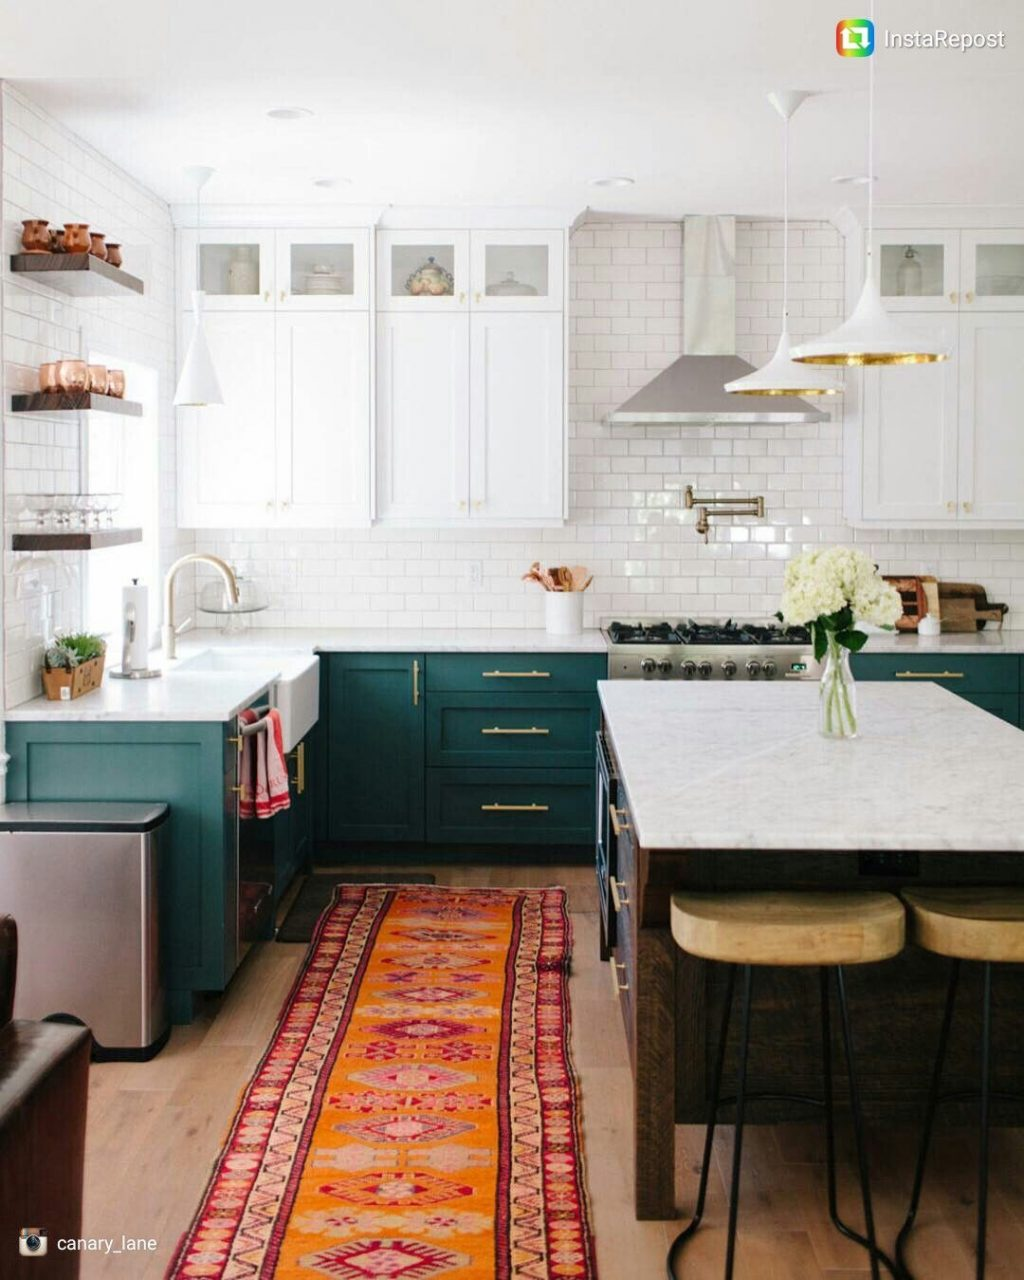 White Upper Cabinets Dark Teal Lower Cabinets Small Cabinets Near